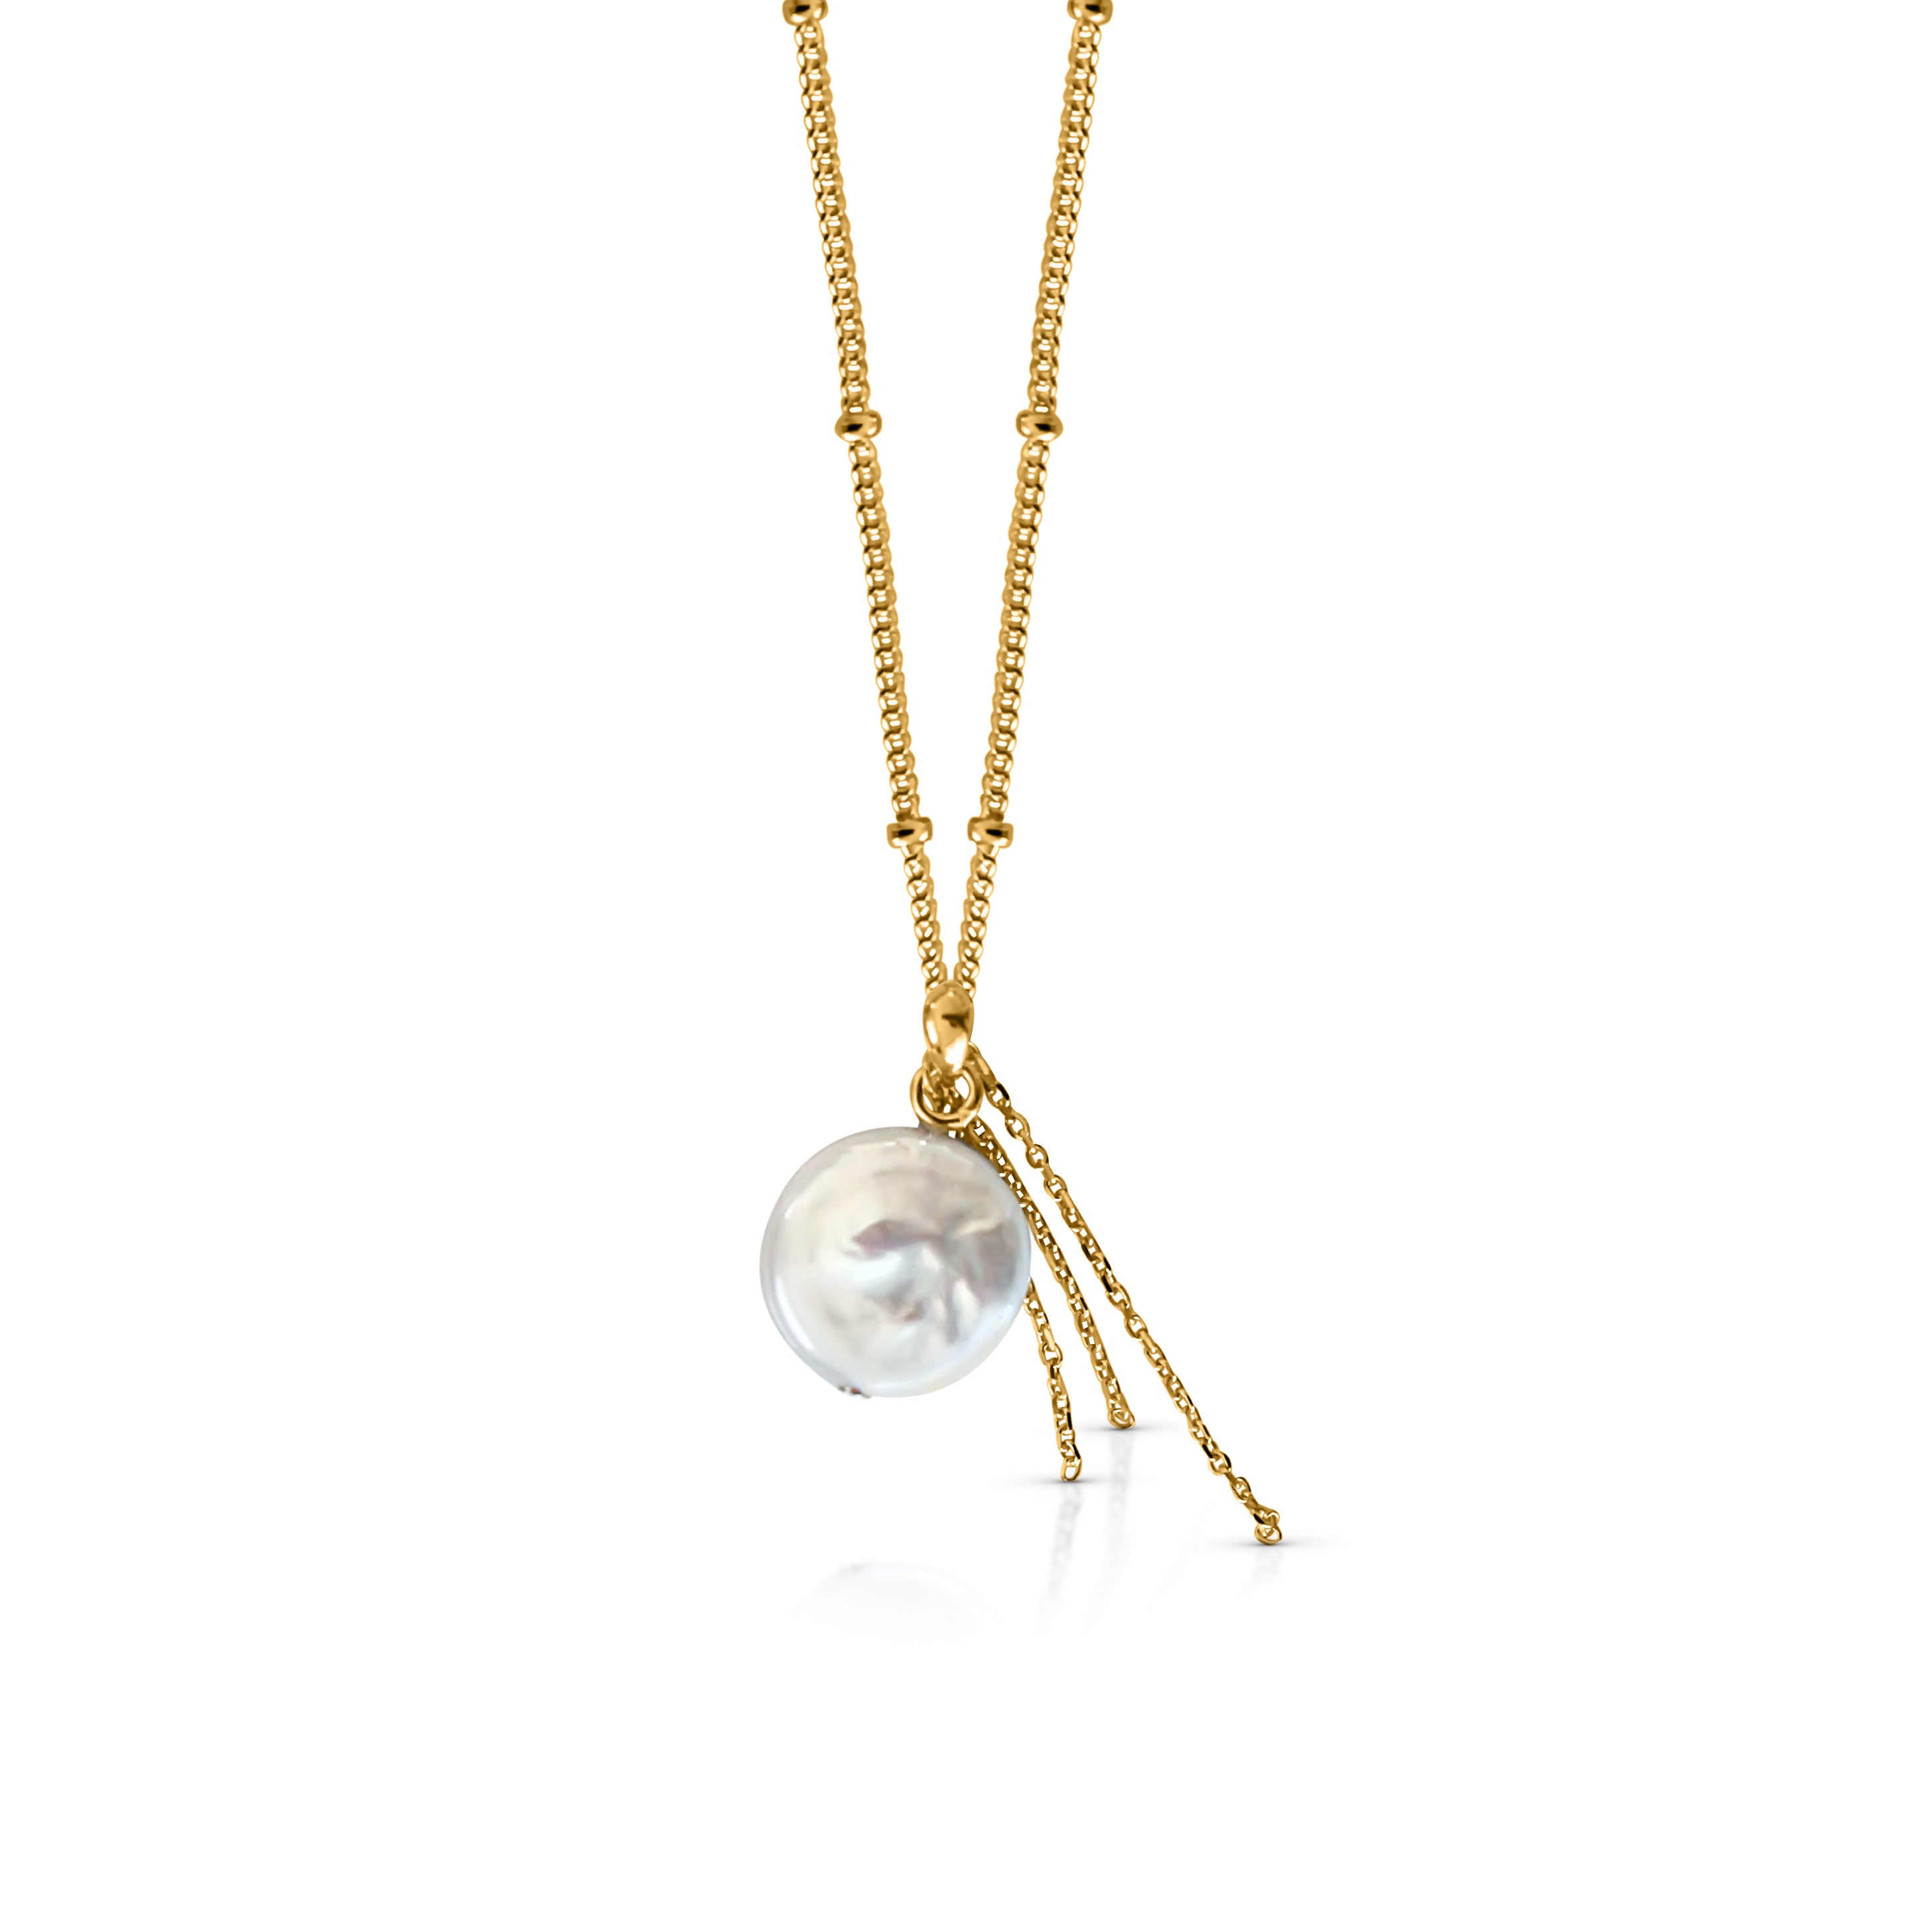 Treasure Necklace - Yellow Gold